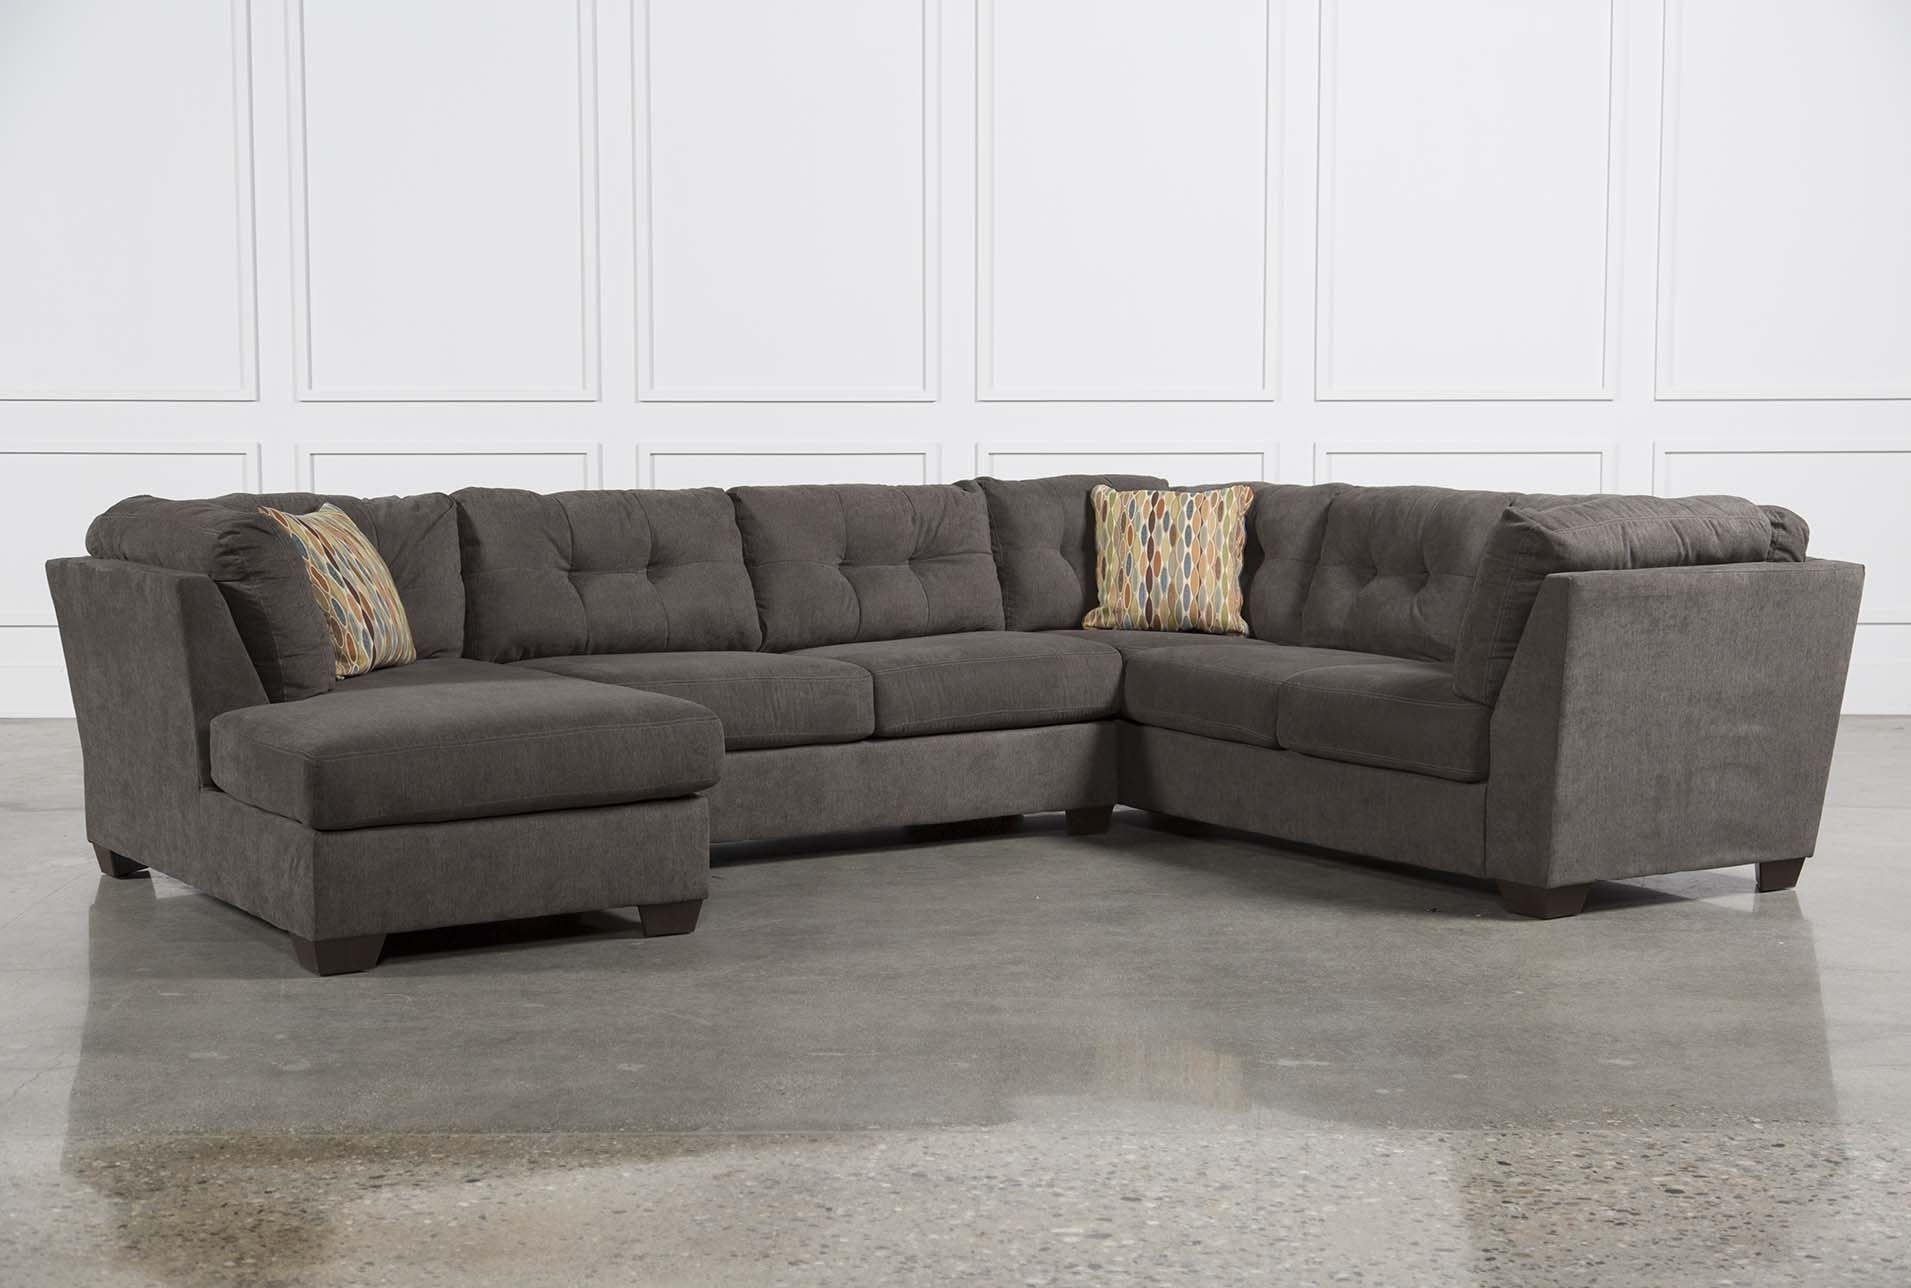 Delta City Steel 3 Piece Sectional W/sleeper | Furniture | Pinterest pertaining to Norfolk Chocolate 3 Piece Sectionals With Raf Chaise